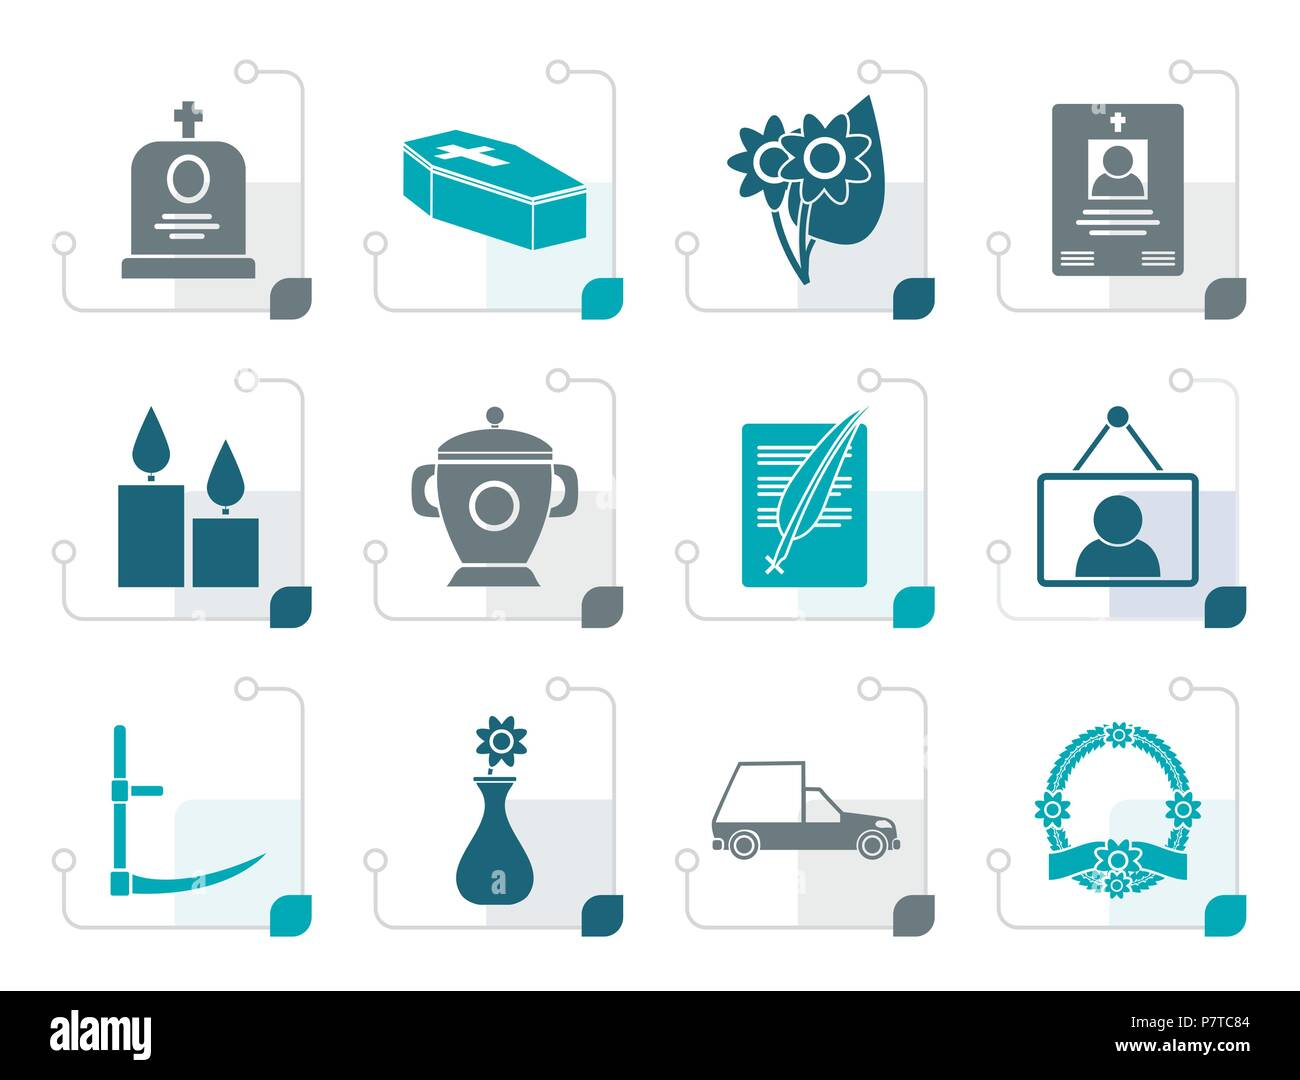 Stylized funeral and burial icons - vector icon set - Stock Vector